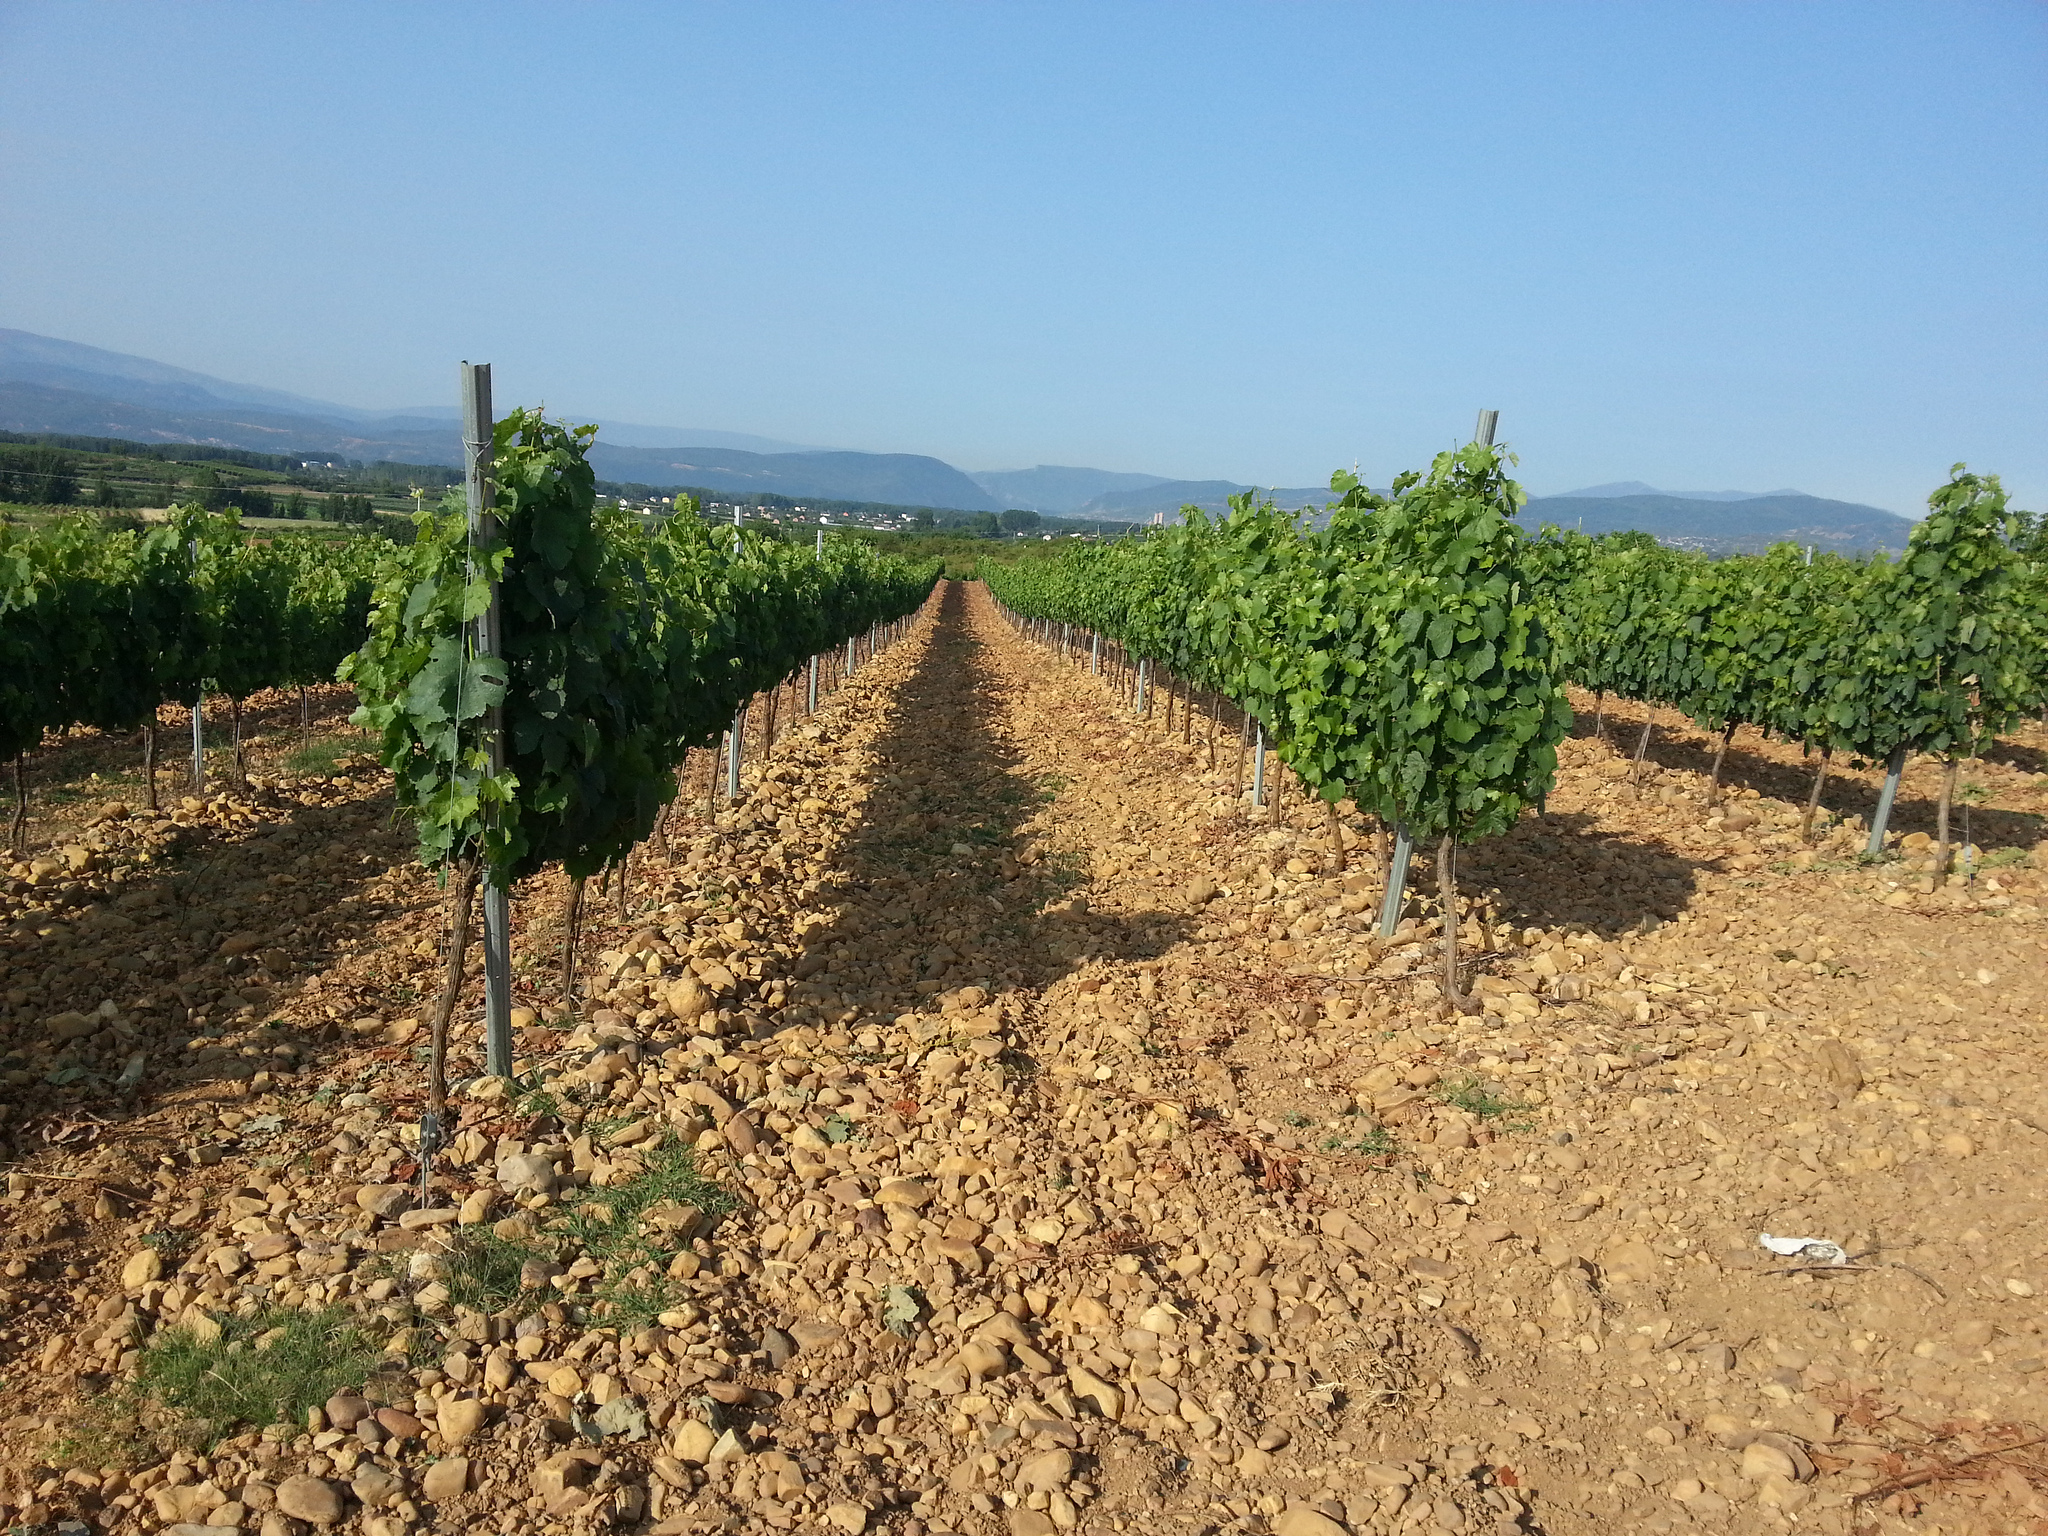 Vineyards in the Bierzo